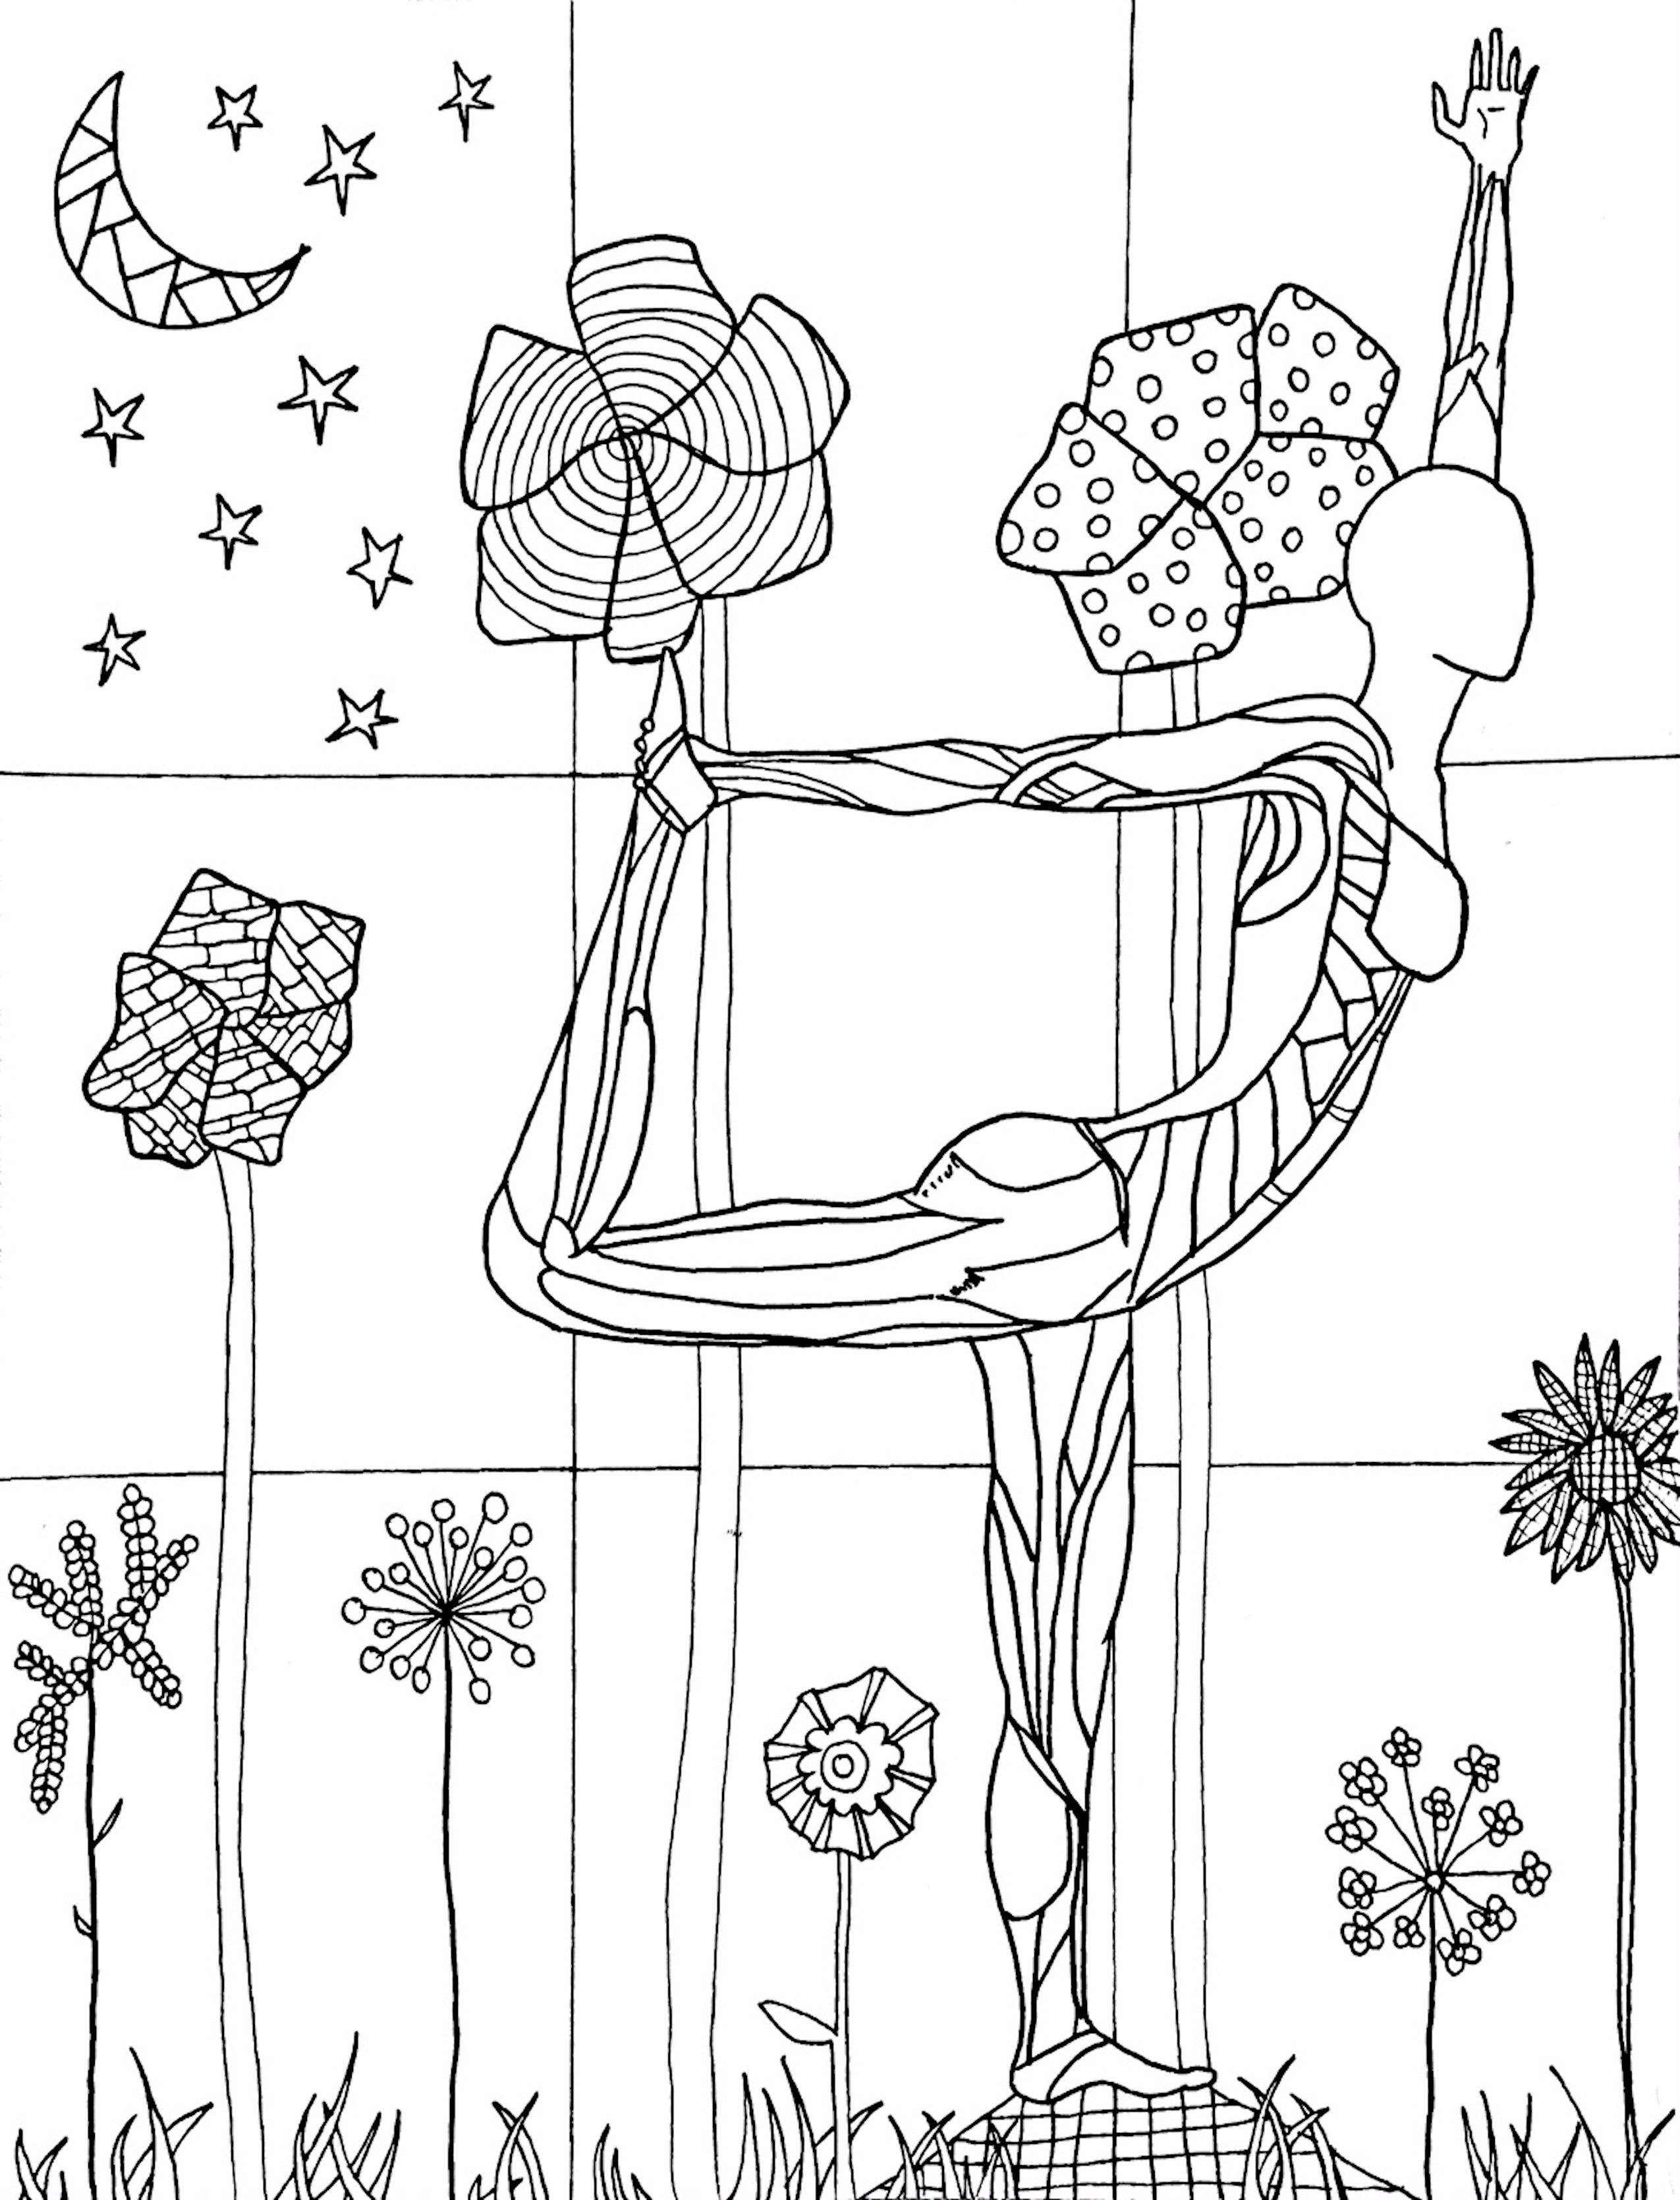 A Coloring Page From Yoga In Color A Yoga Anatomy Coloring